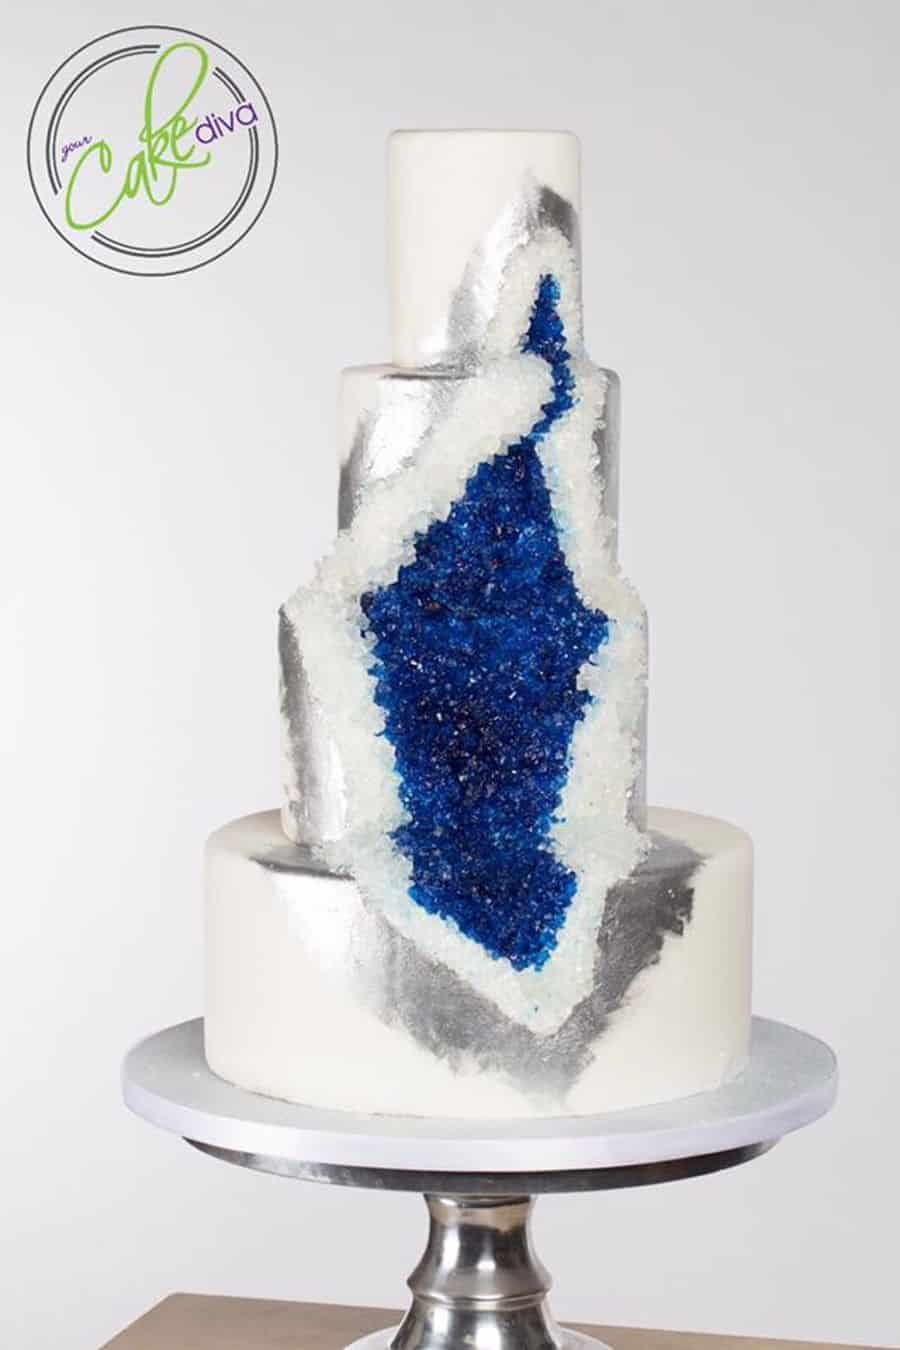 Silver and blue large geode in a cake